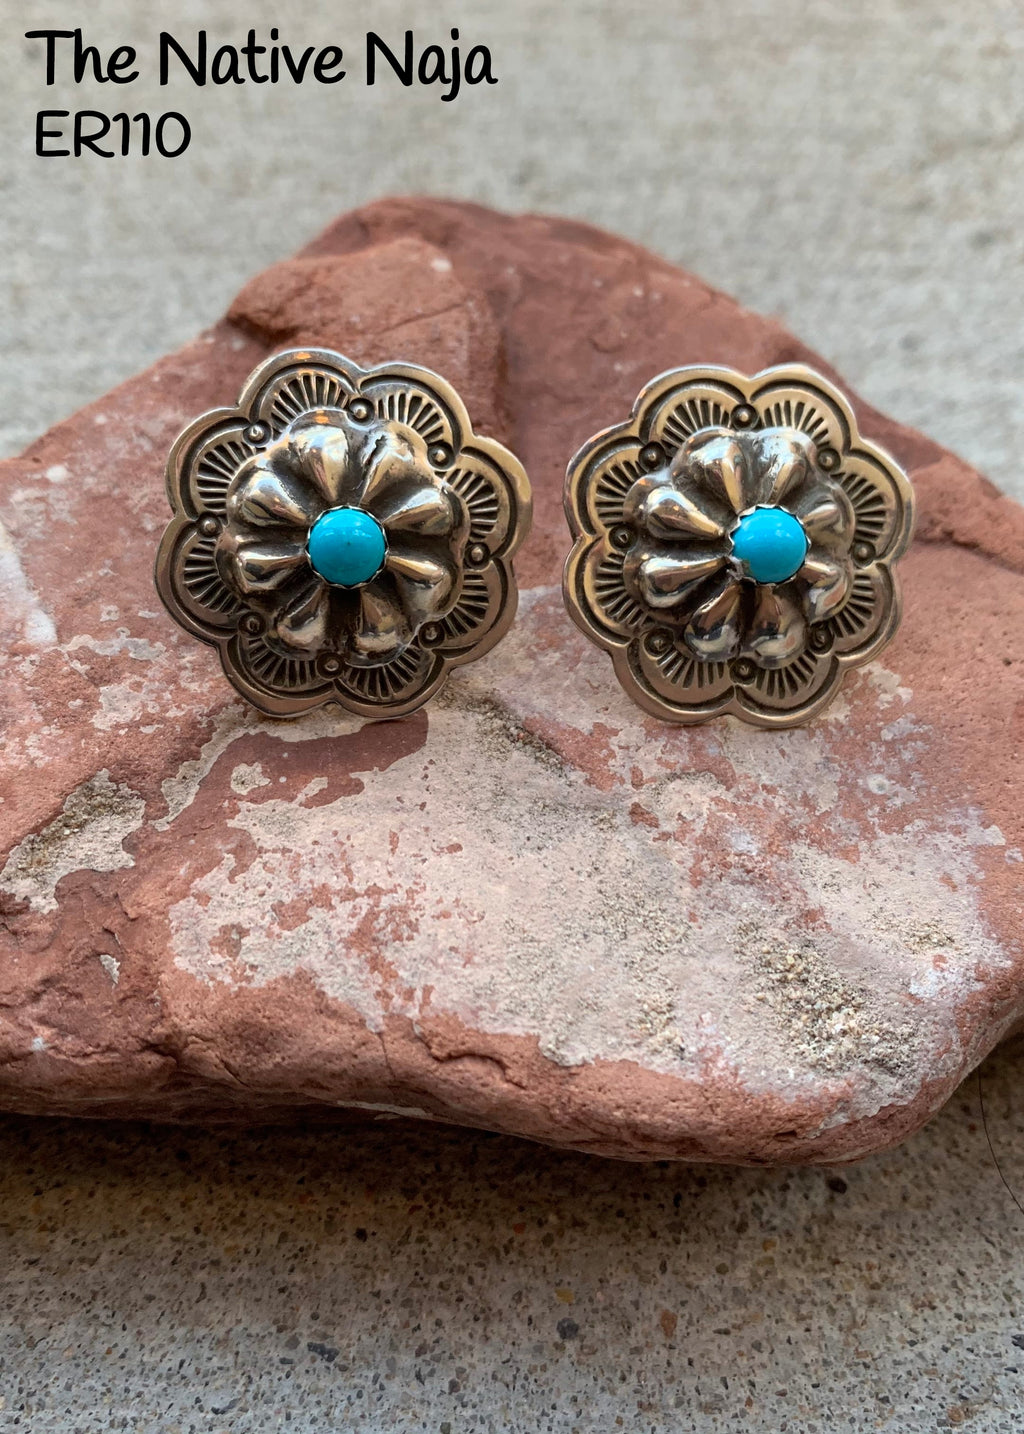 Dainty Navajo Genuine Sterling Silver & Kingman Turquoise Concho Post Earrings ER110